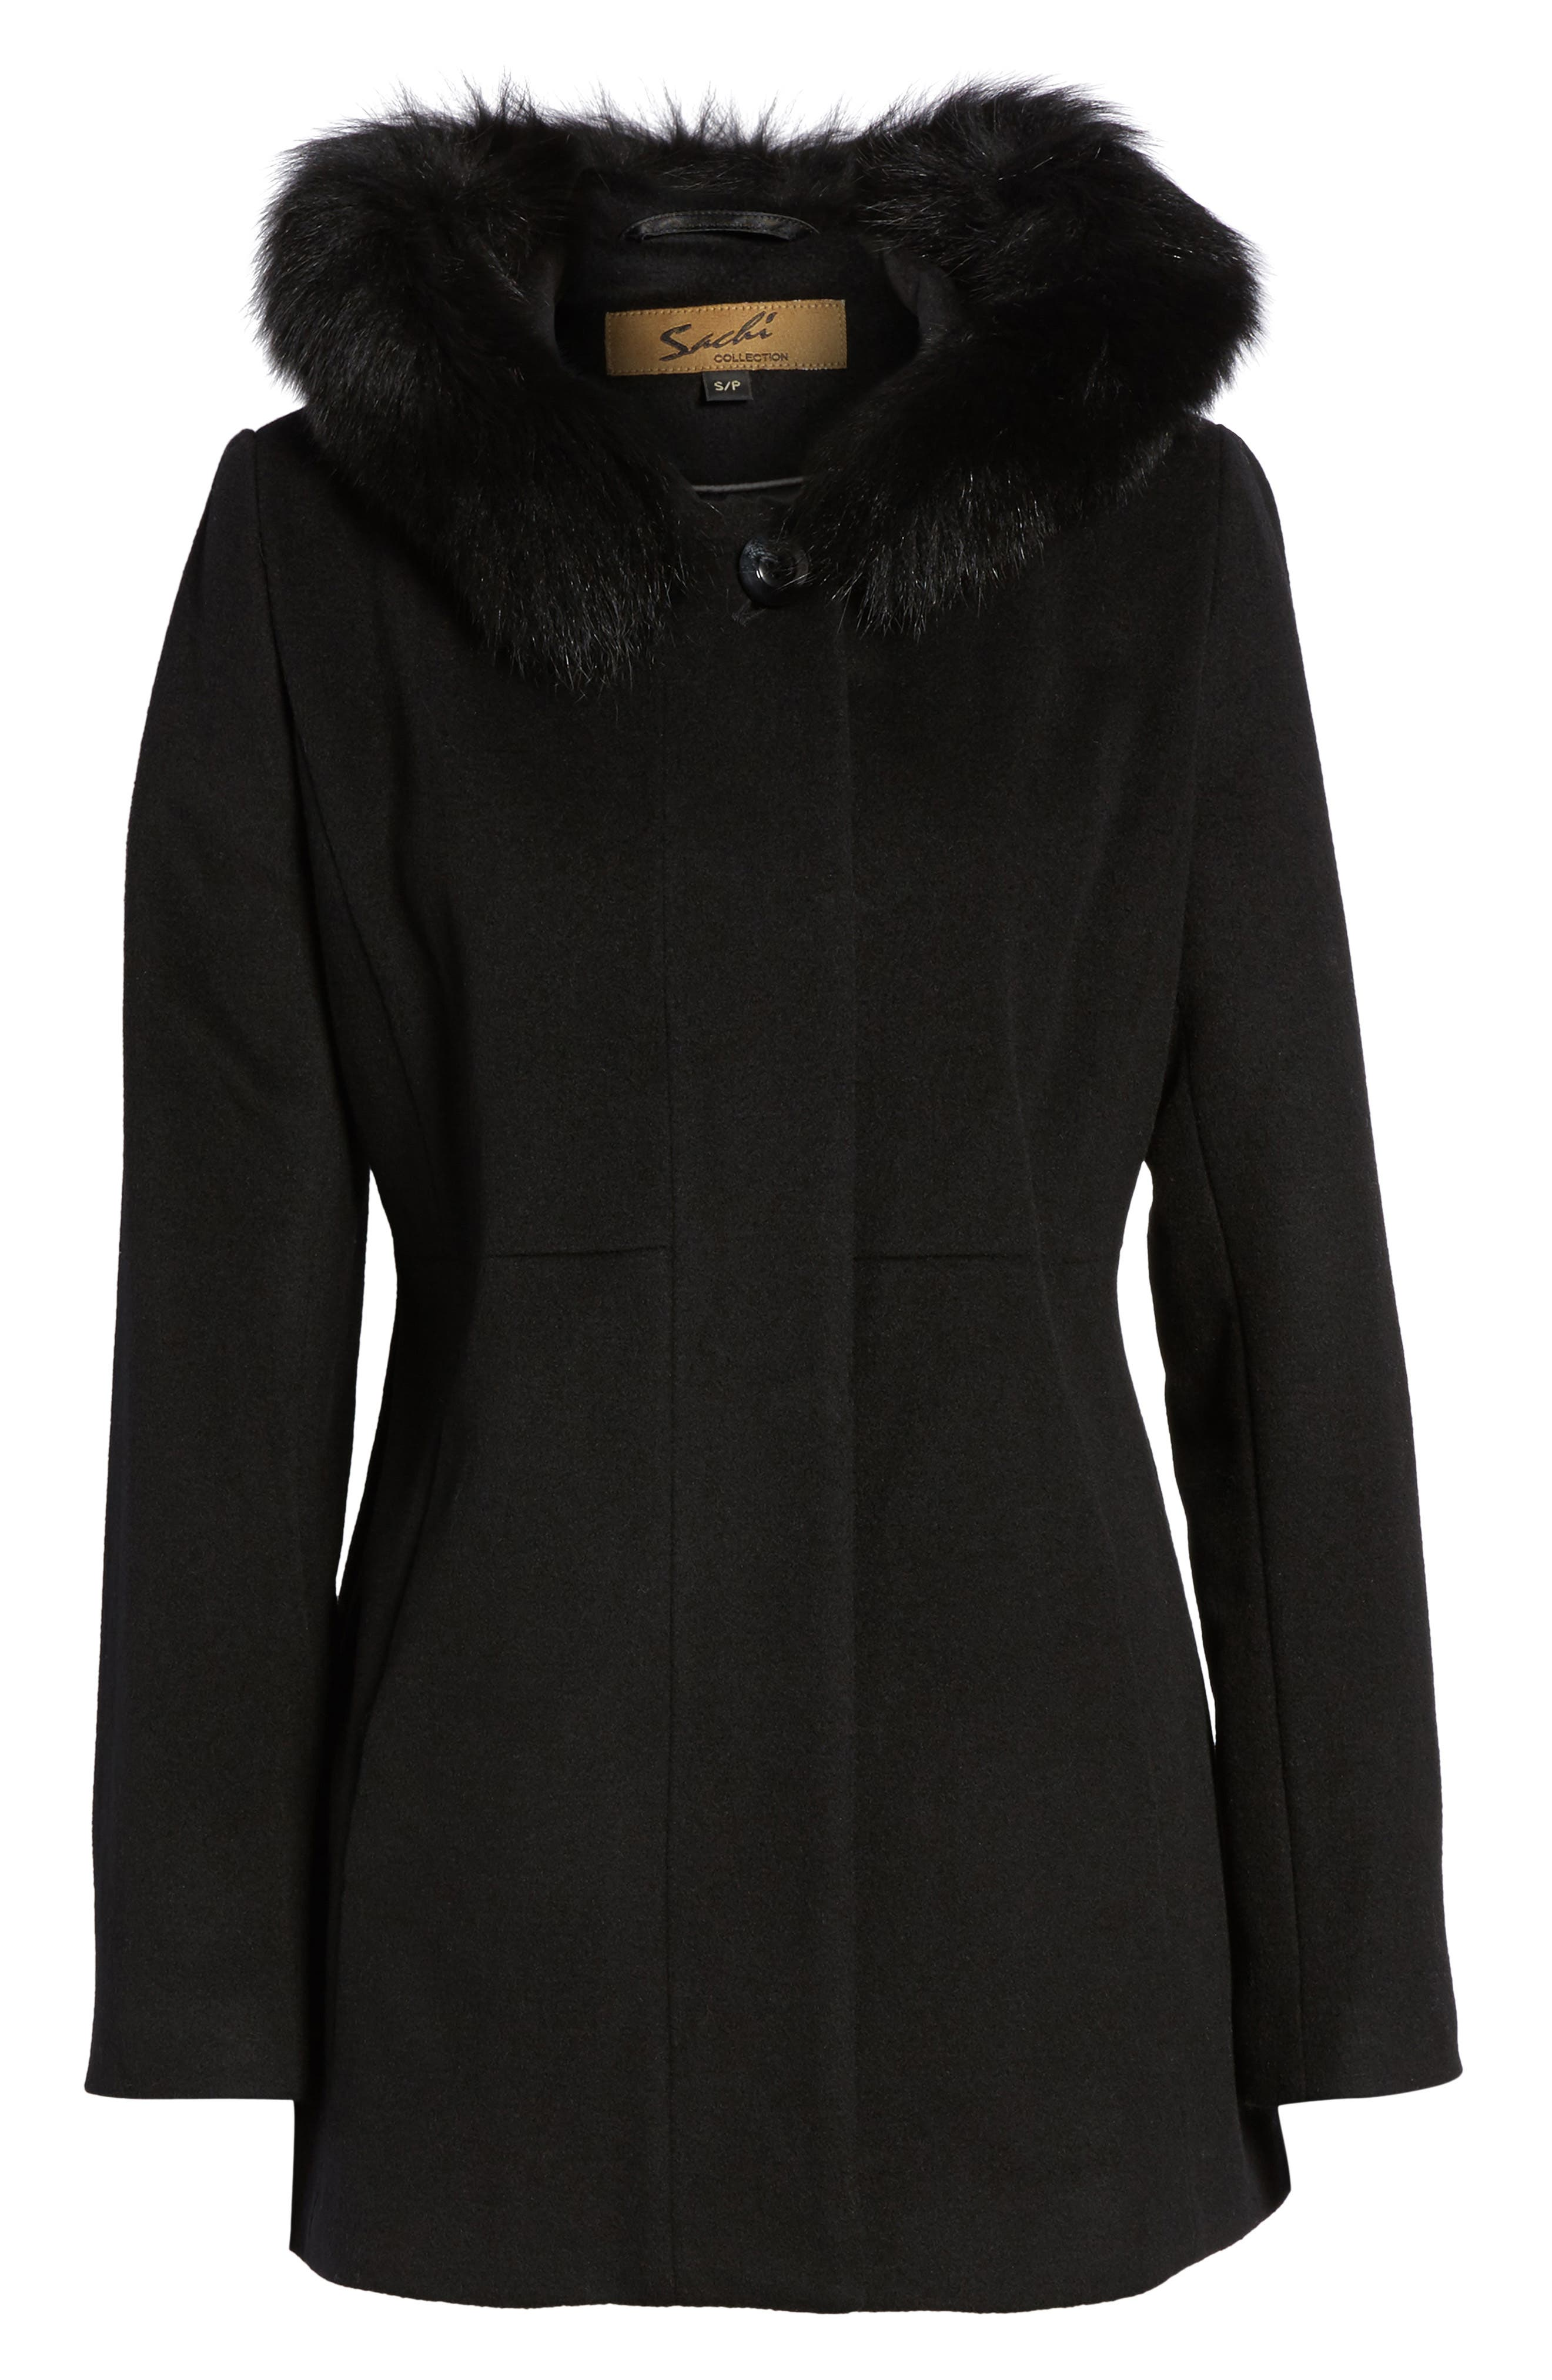 Alternate Image 1 Selected - Sachi Genuine Fox Fur Trim Hooded Wool Blend Coat (Regular & Petite)